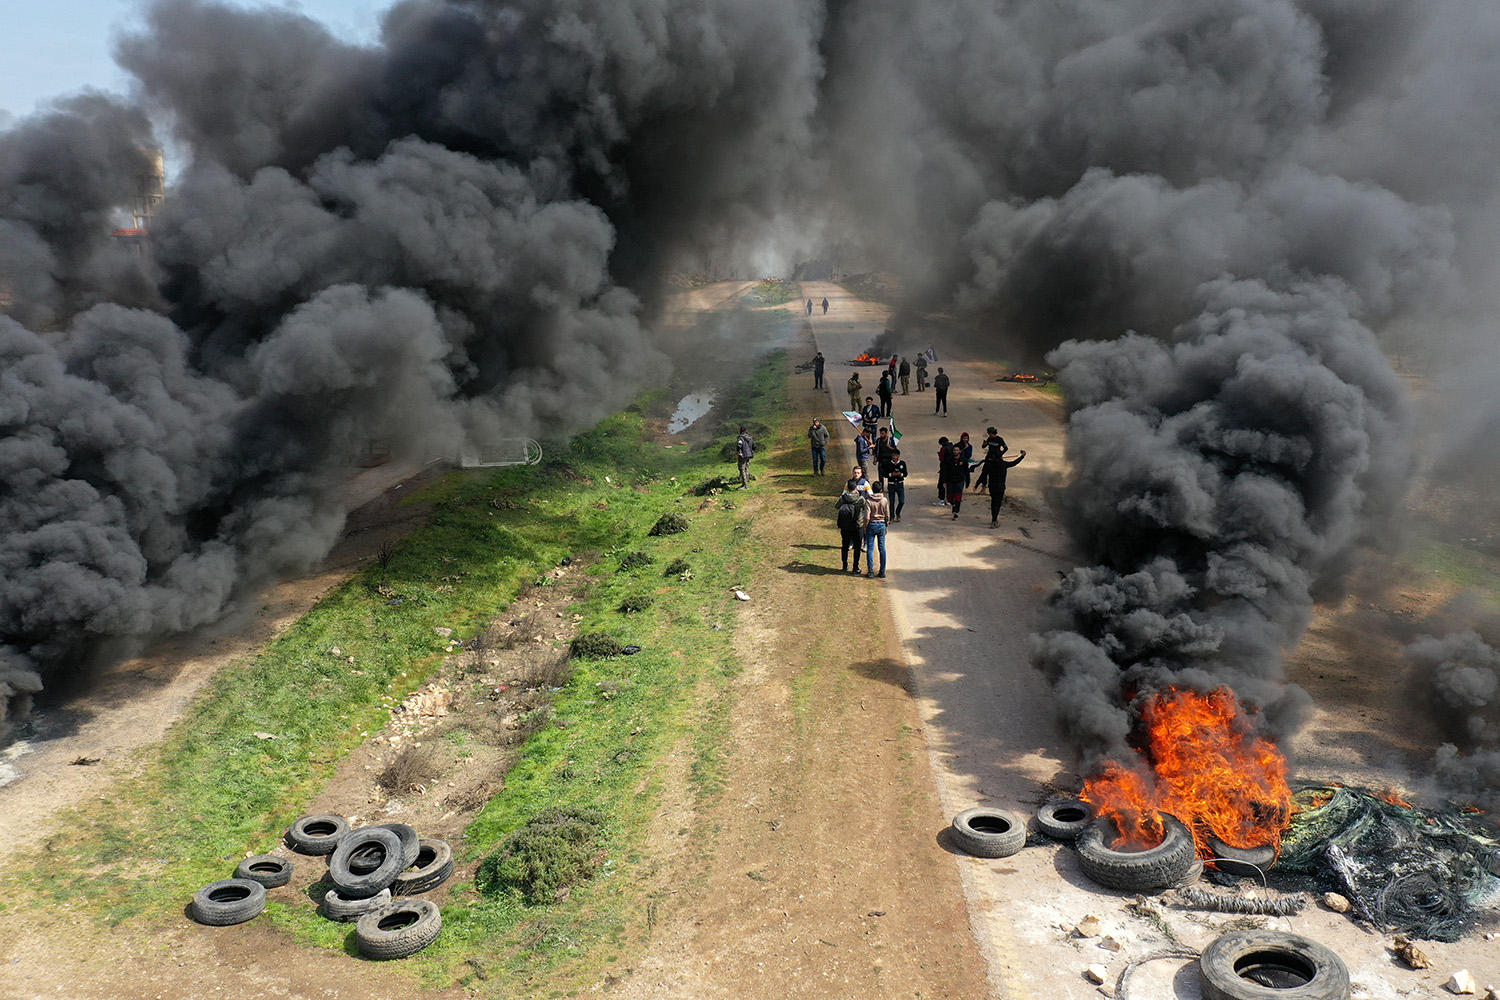 Syrian protesters burn tires in the village of Al-Nayrab in northwestern Syria on March 15 in an attempt to block traffic on the strategic M4 highway and prevent a joint Turkish-Russian military patrol from being conducted. OMAR HAJ KADOUR/AFP via Getty Images